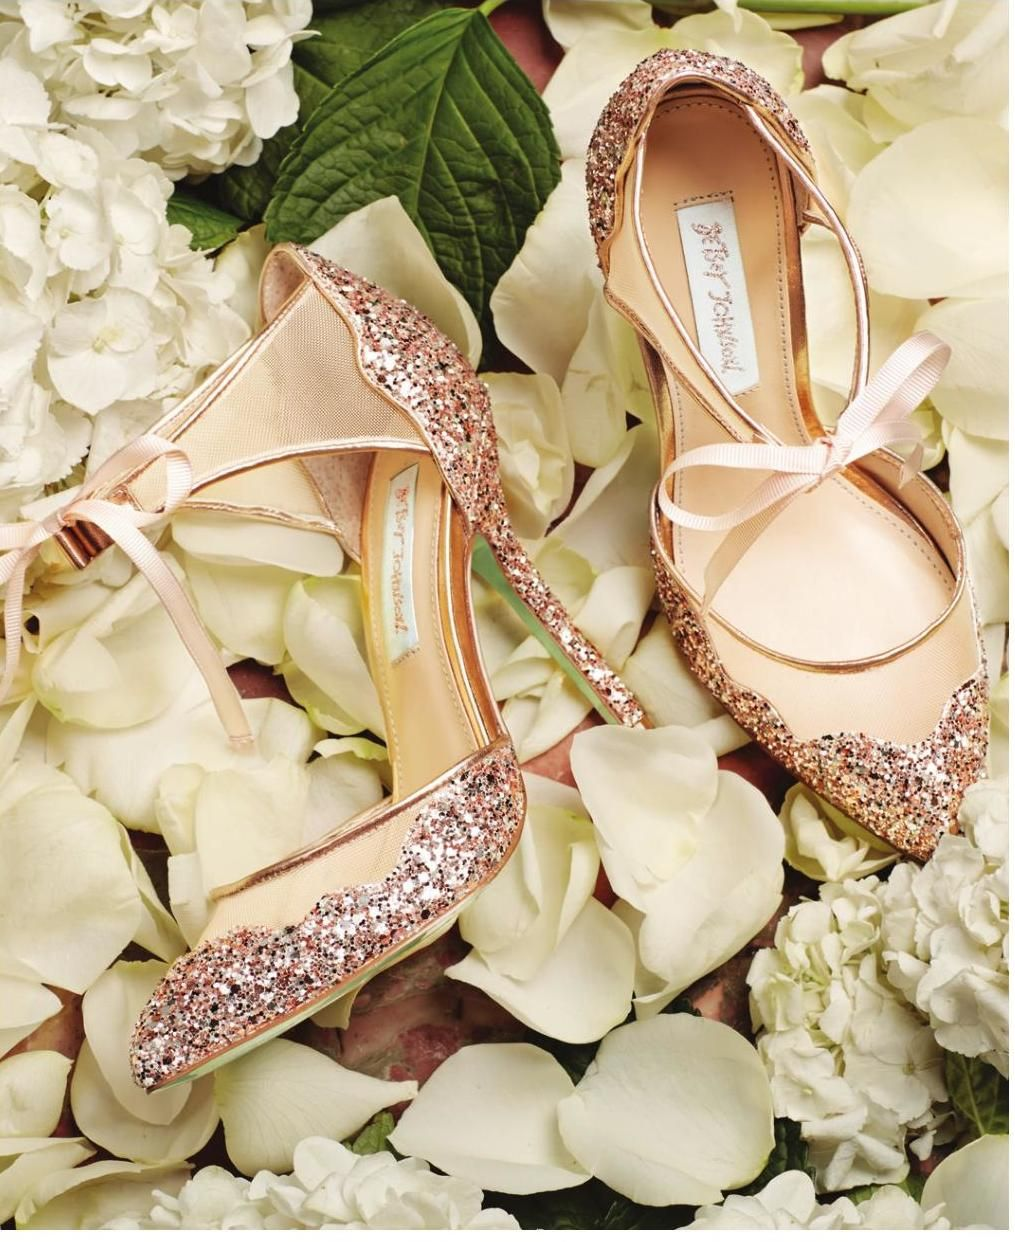 The Knot Fall 2015 Betsey johnson wedding shoes, Blue by